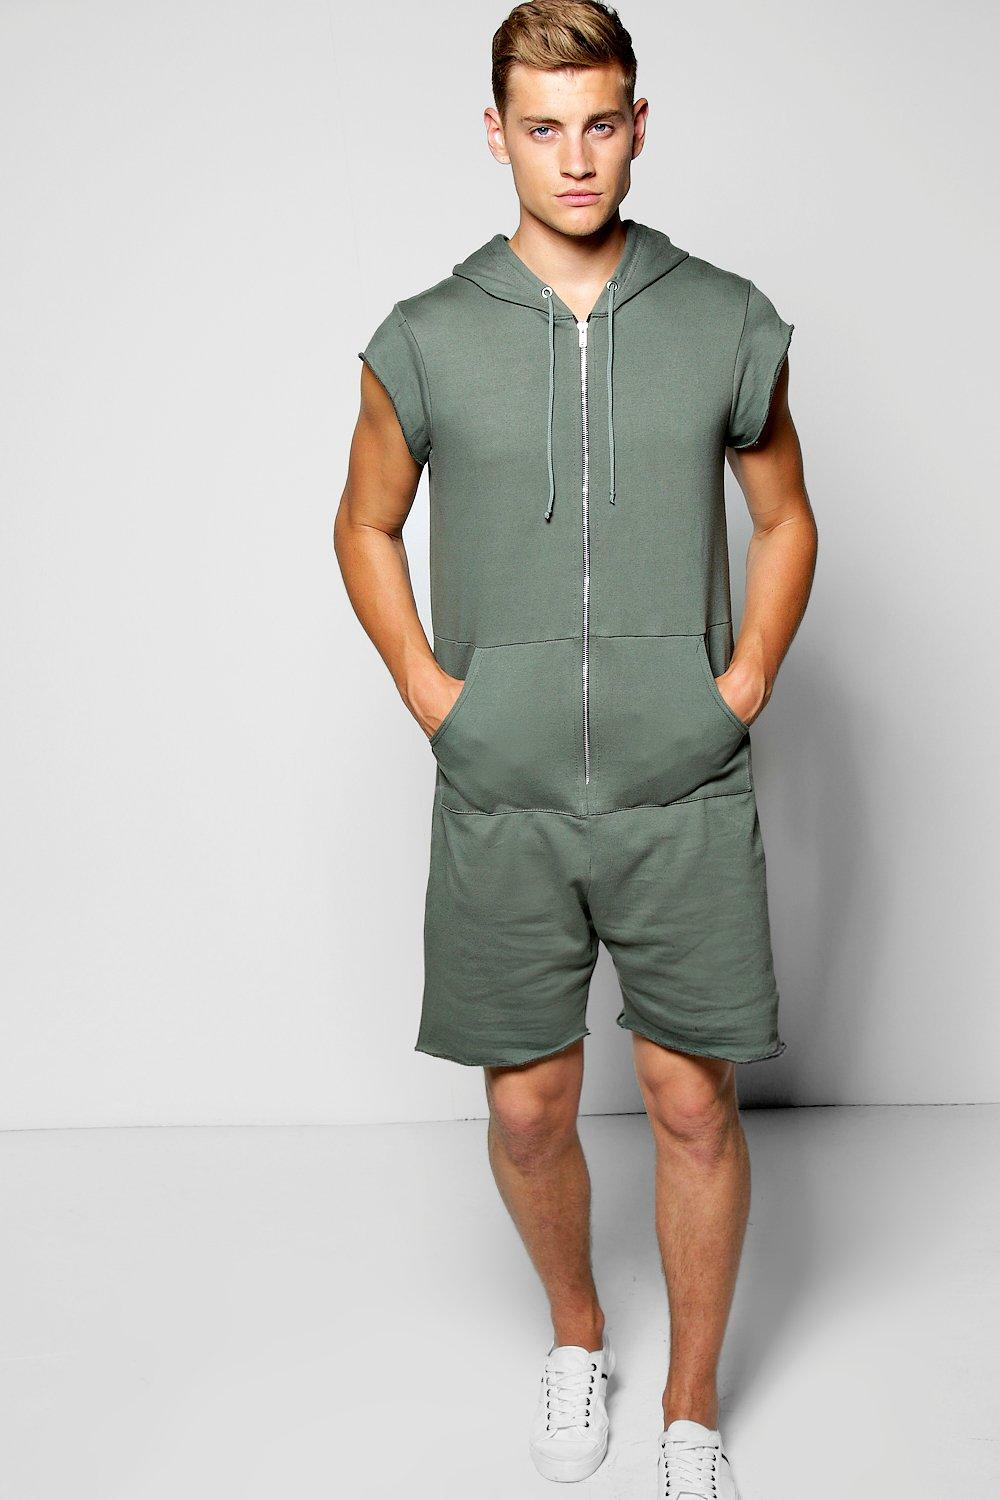 Camo Sleeveless Onesie